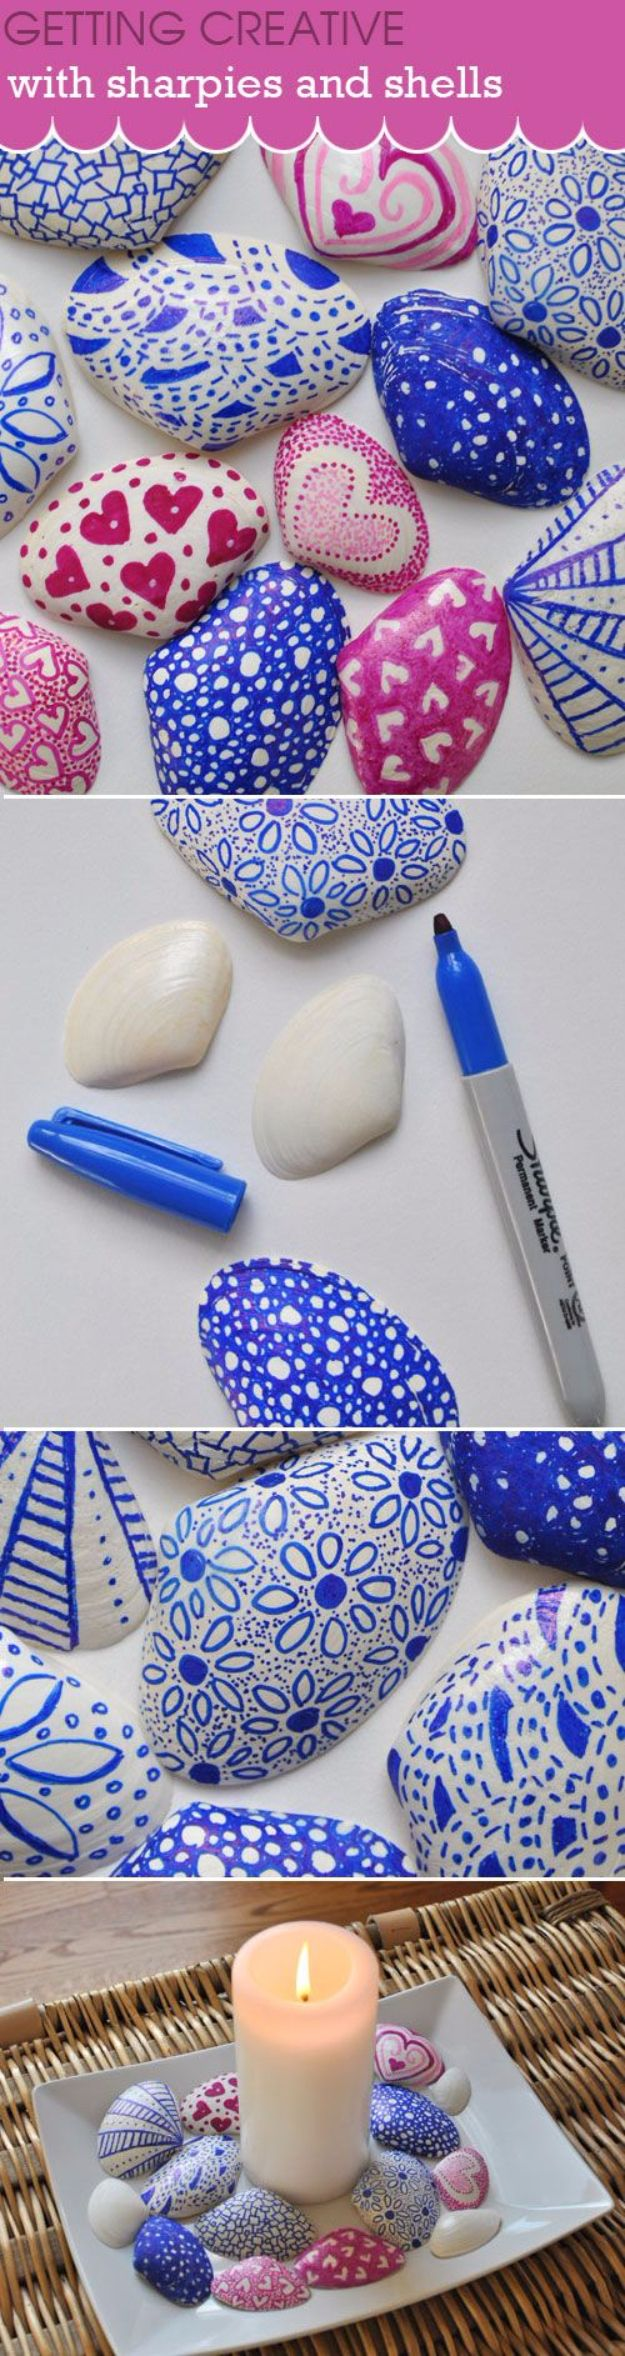 DIY Sharpie Crafts - Sharpies And Shells Craft - Cool and Easy Craft Projects and DIY Ideas Using Sharpies - Use Markers To Decorate and Design Home Decor, Cool Homemade Gifts, T-Shirts, Shoes and Wall Art. Creative Project Tutorials for Teens, Kids and Adults http://diyjoy.com/diy-sharpie-crafts